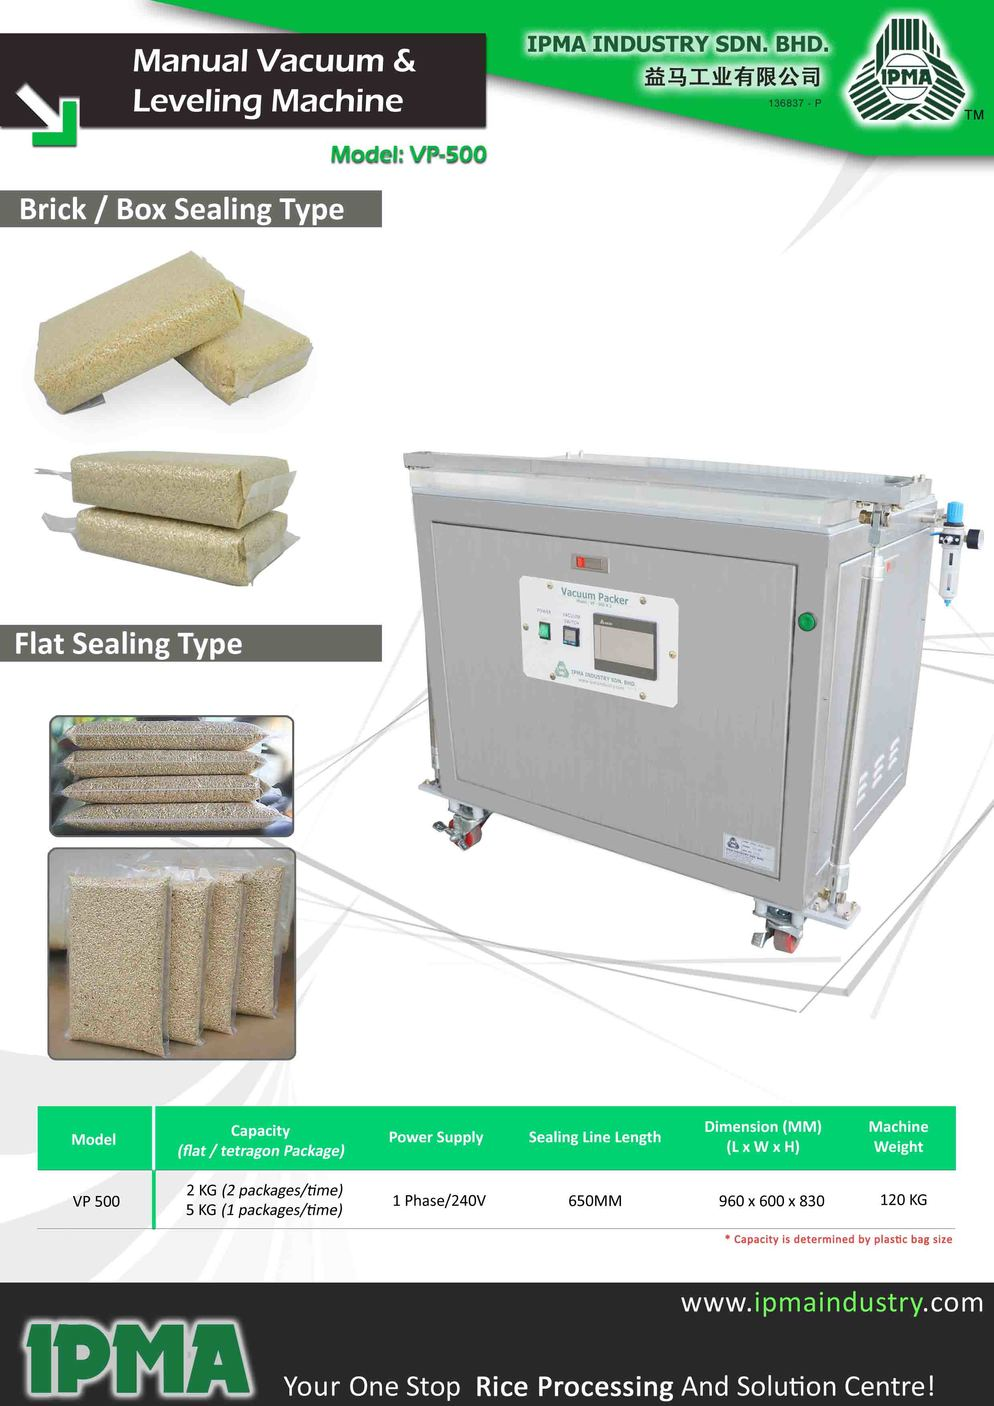 Vacuum & Leveling Vibration Packaging Machine